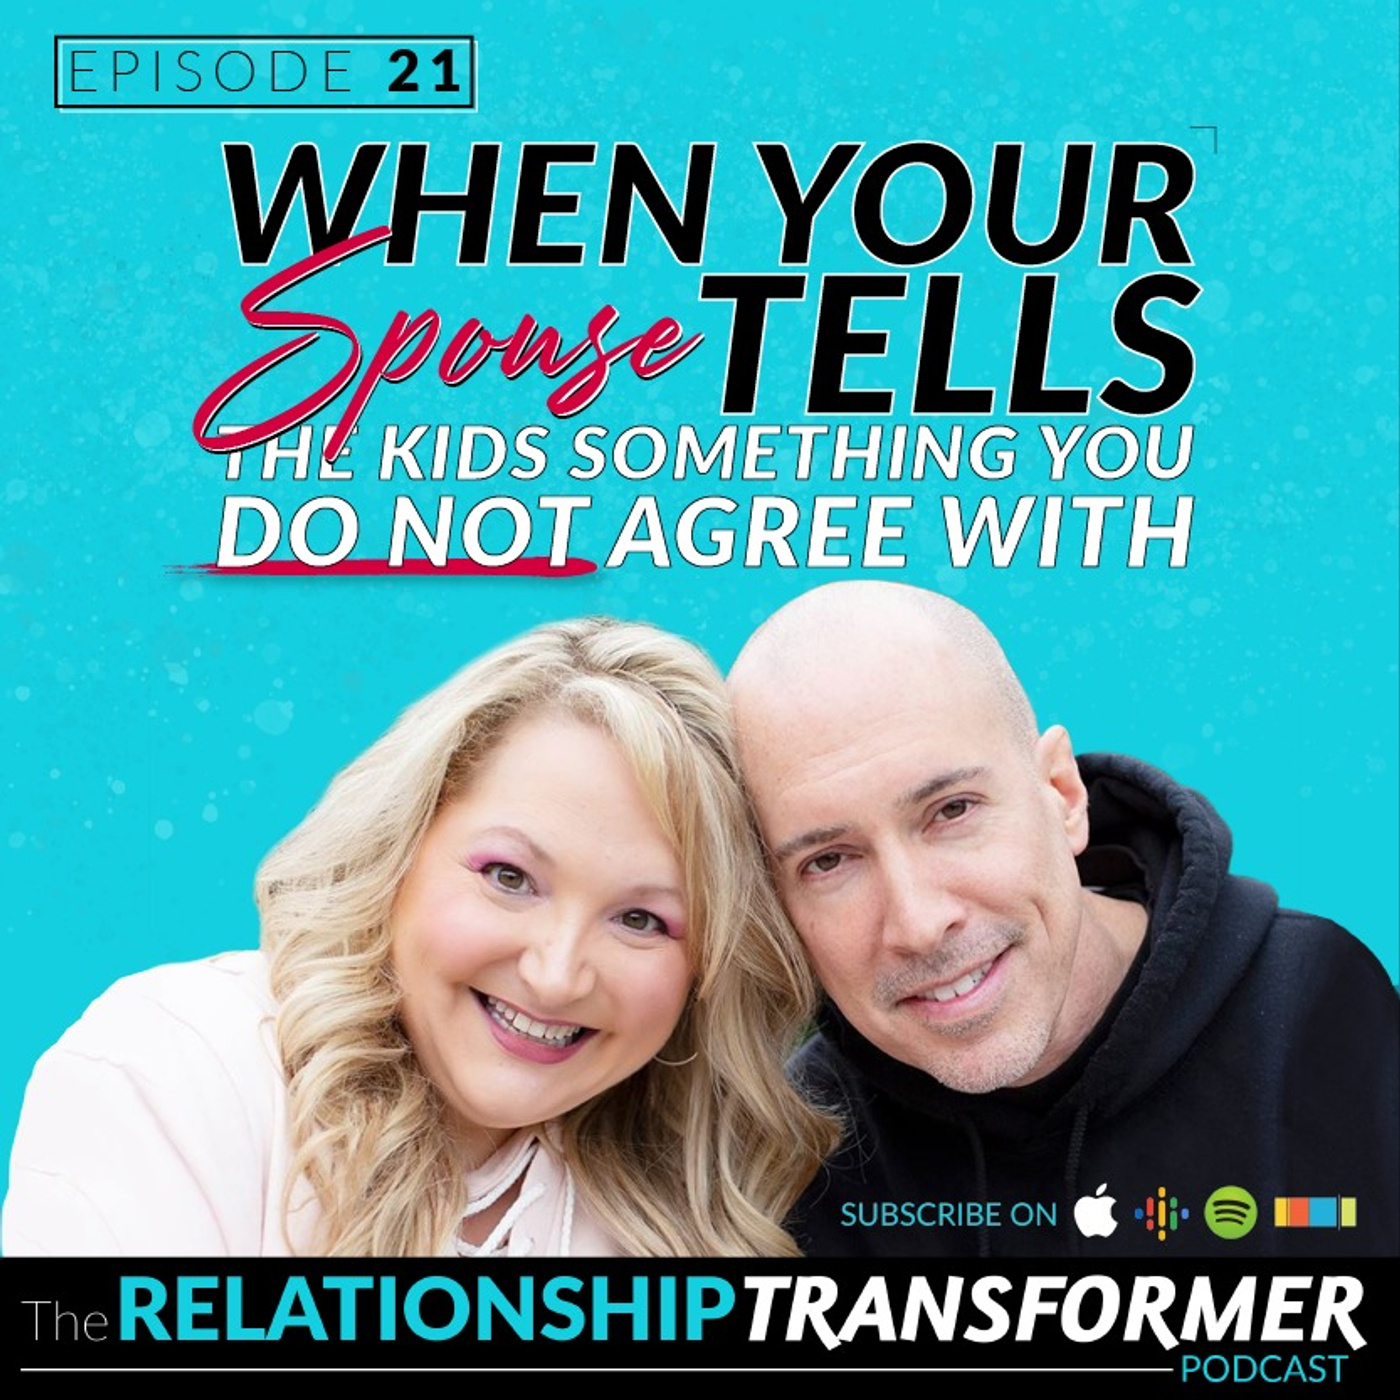 Relationship Transformers - 21: When Your Spouse Tells The Kids Something You Do Not Agree With